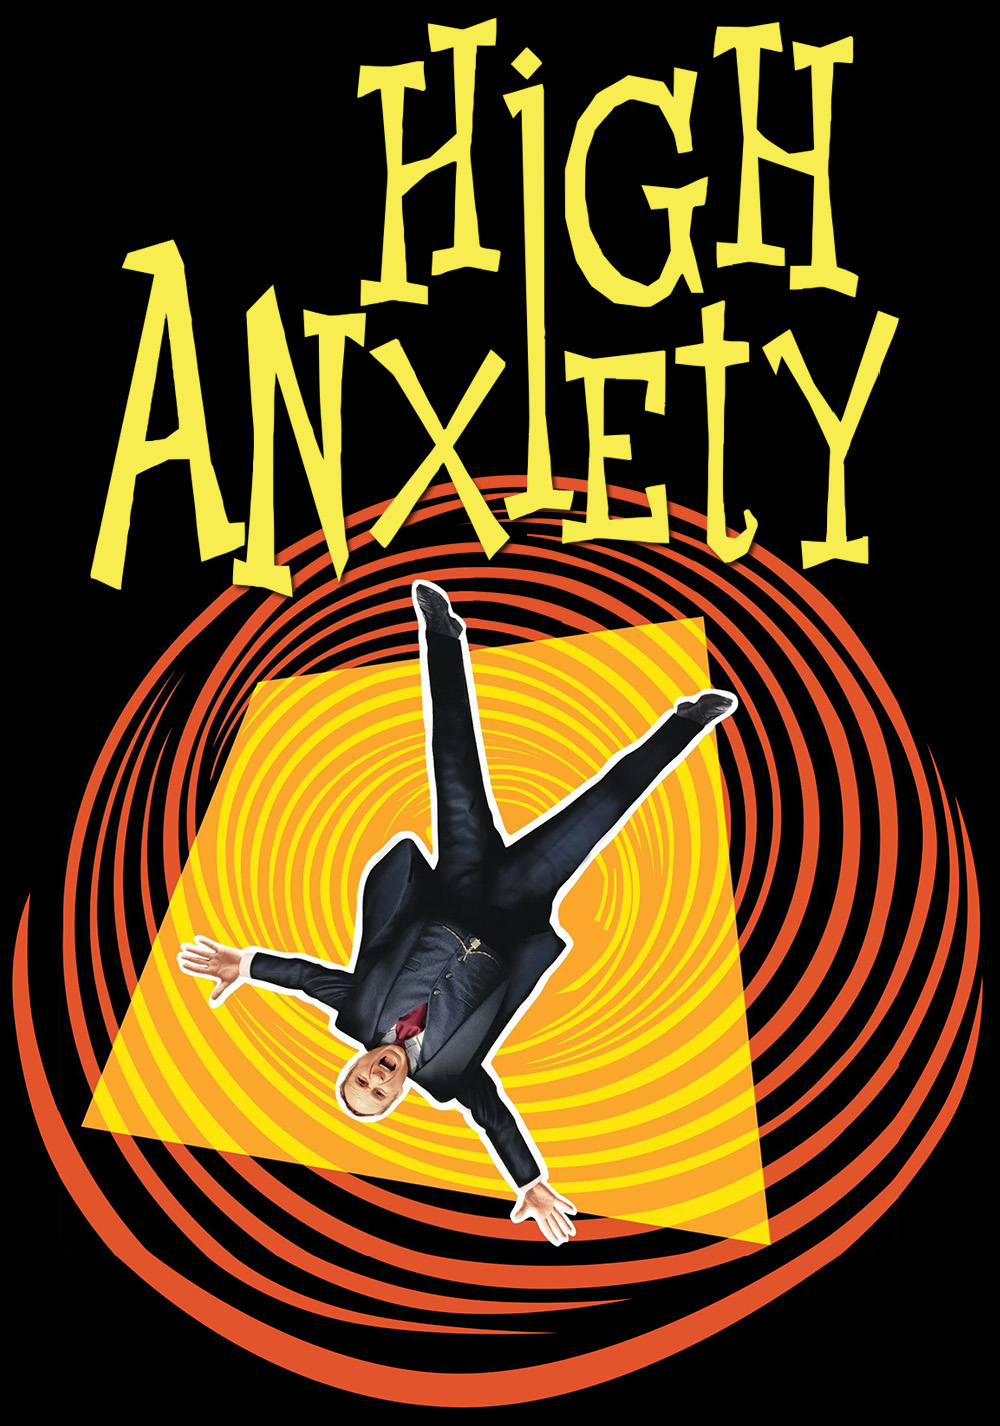 high-anxiety-54e8ec57e6407.jpg